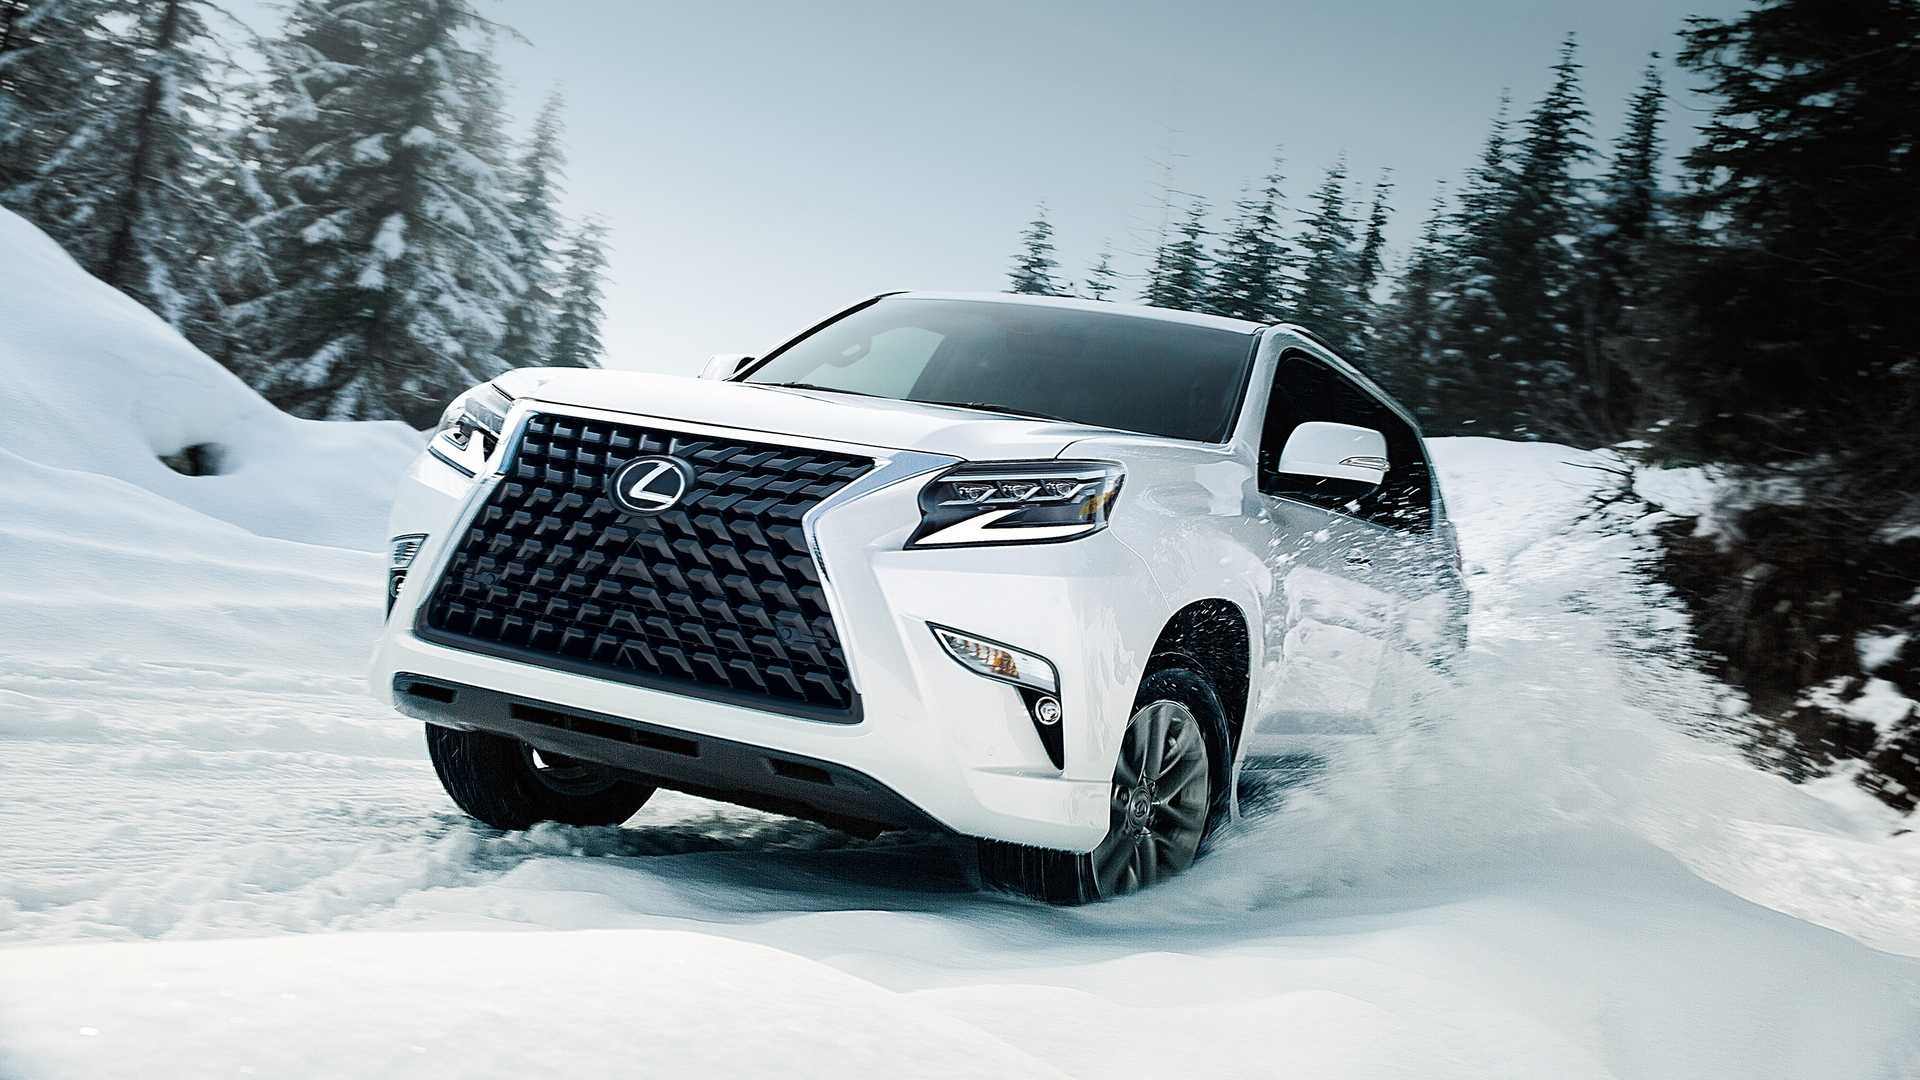 2020 Lexus GX Revealed With Updated Styling, Off-Road Package